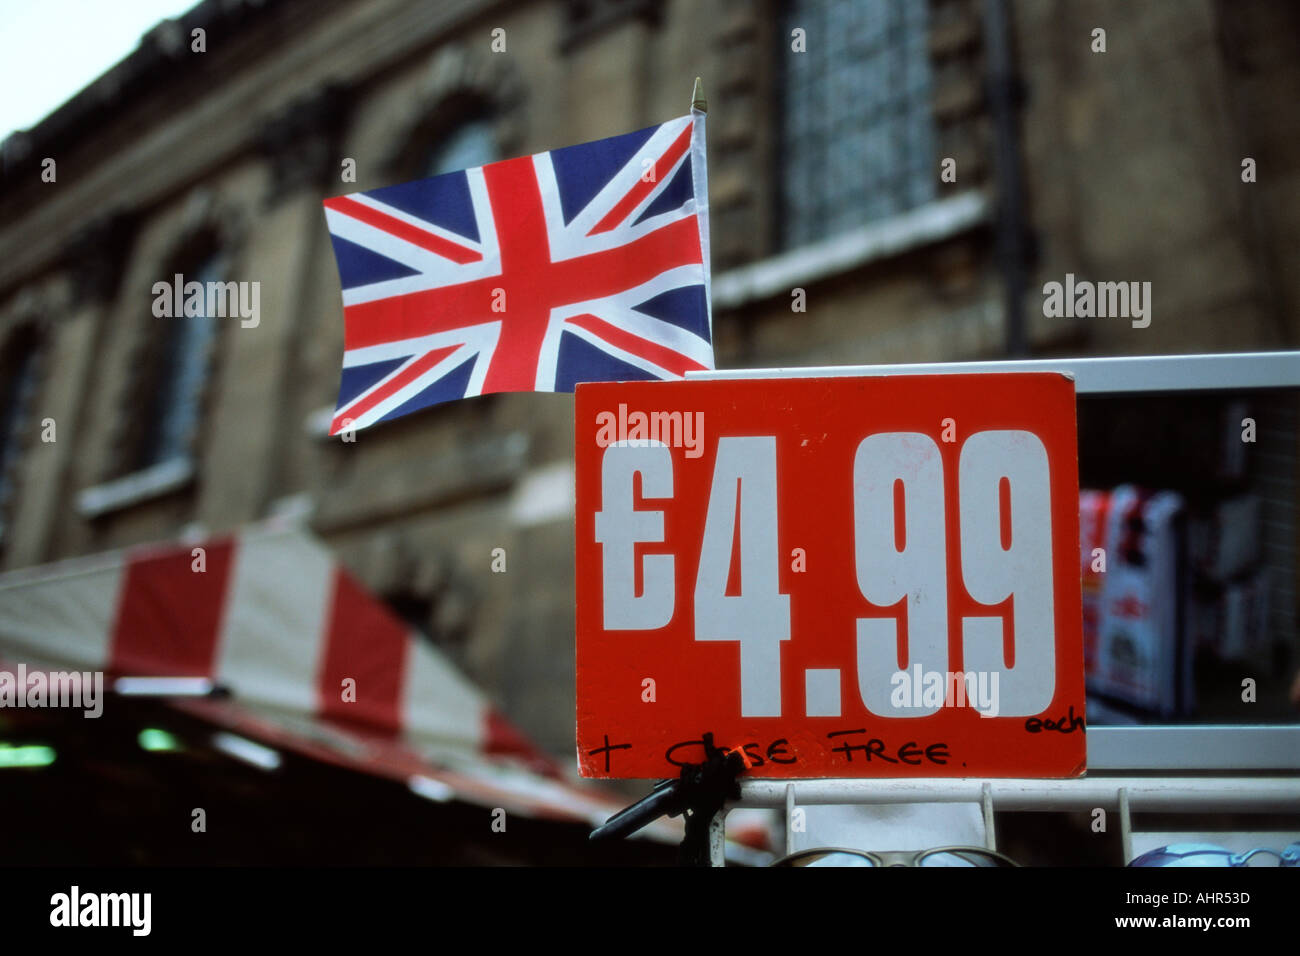 Price tag on market stall - Stock Image